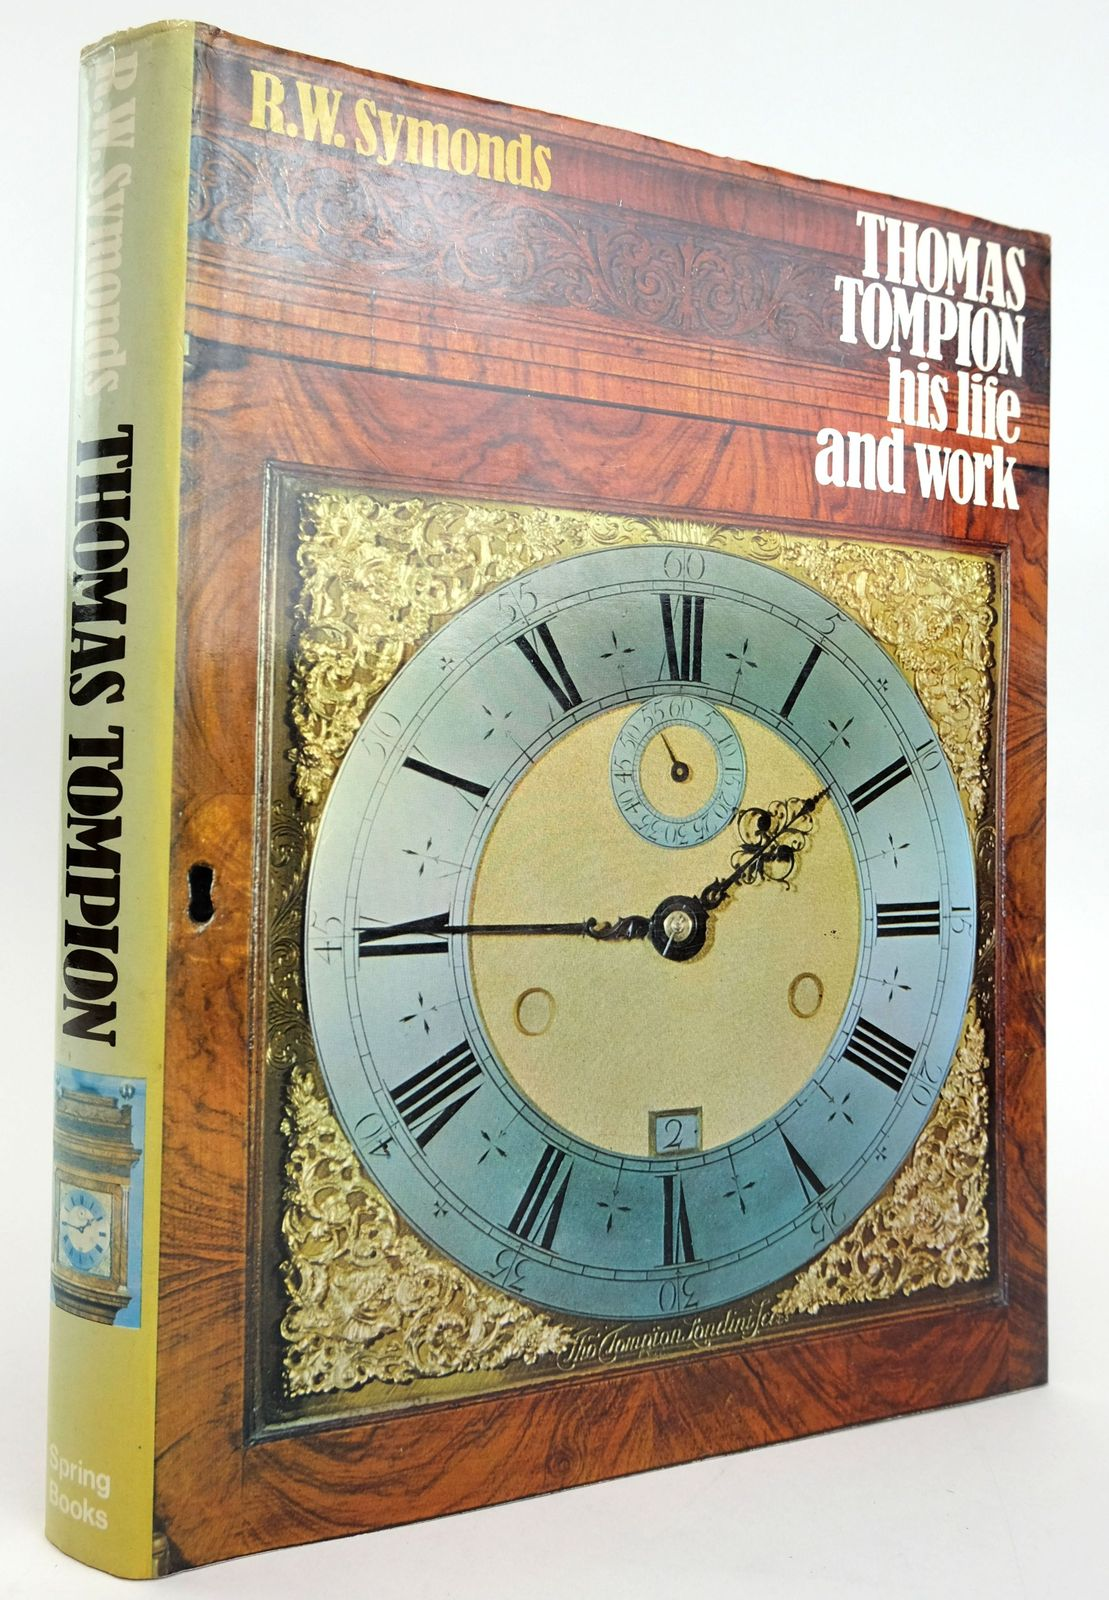 Photo of THOMAS TOMPION HIS LIFE AND WORK written by Symonds, R.W. published by Spring Books (STOCK CODE: 1820094)  for sale by Stella & Rose's Books